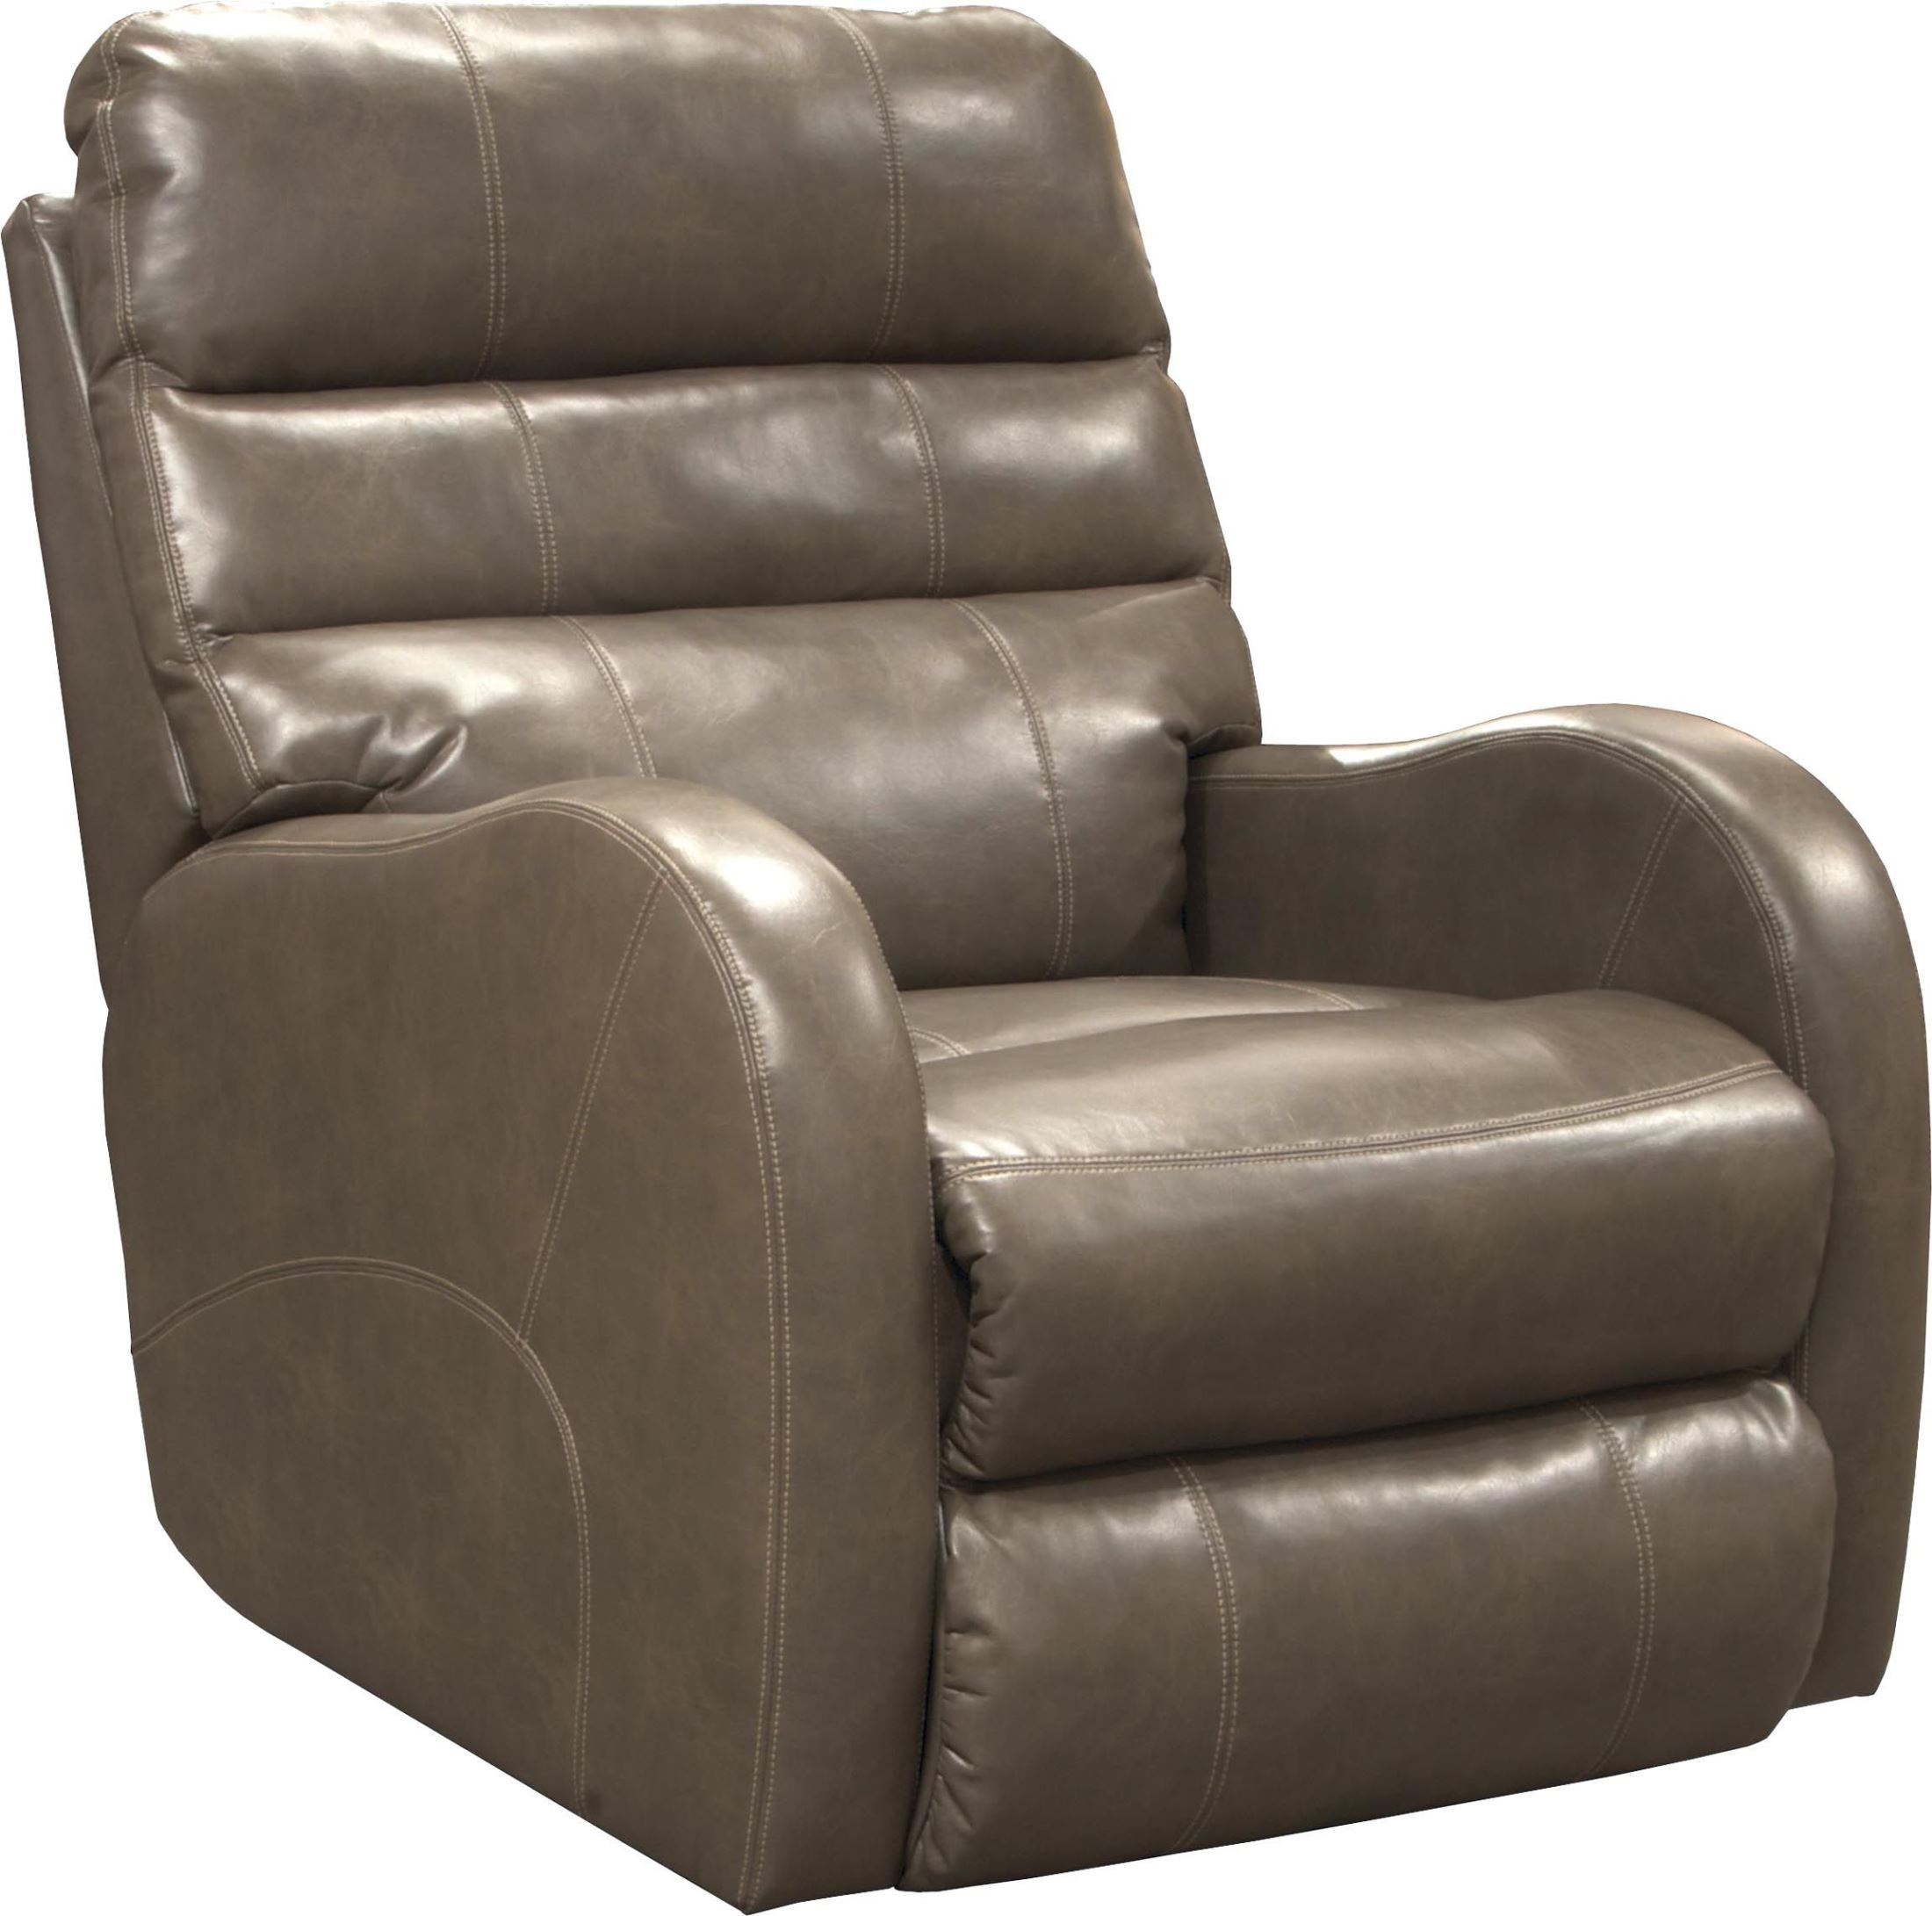 Searcy coffee rocker recliner from catnapper 47472126318 for Catnapper cloud nine chaise recliner